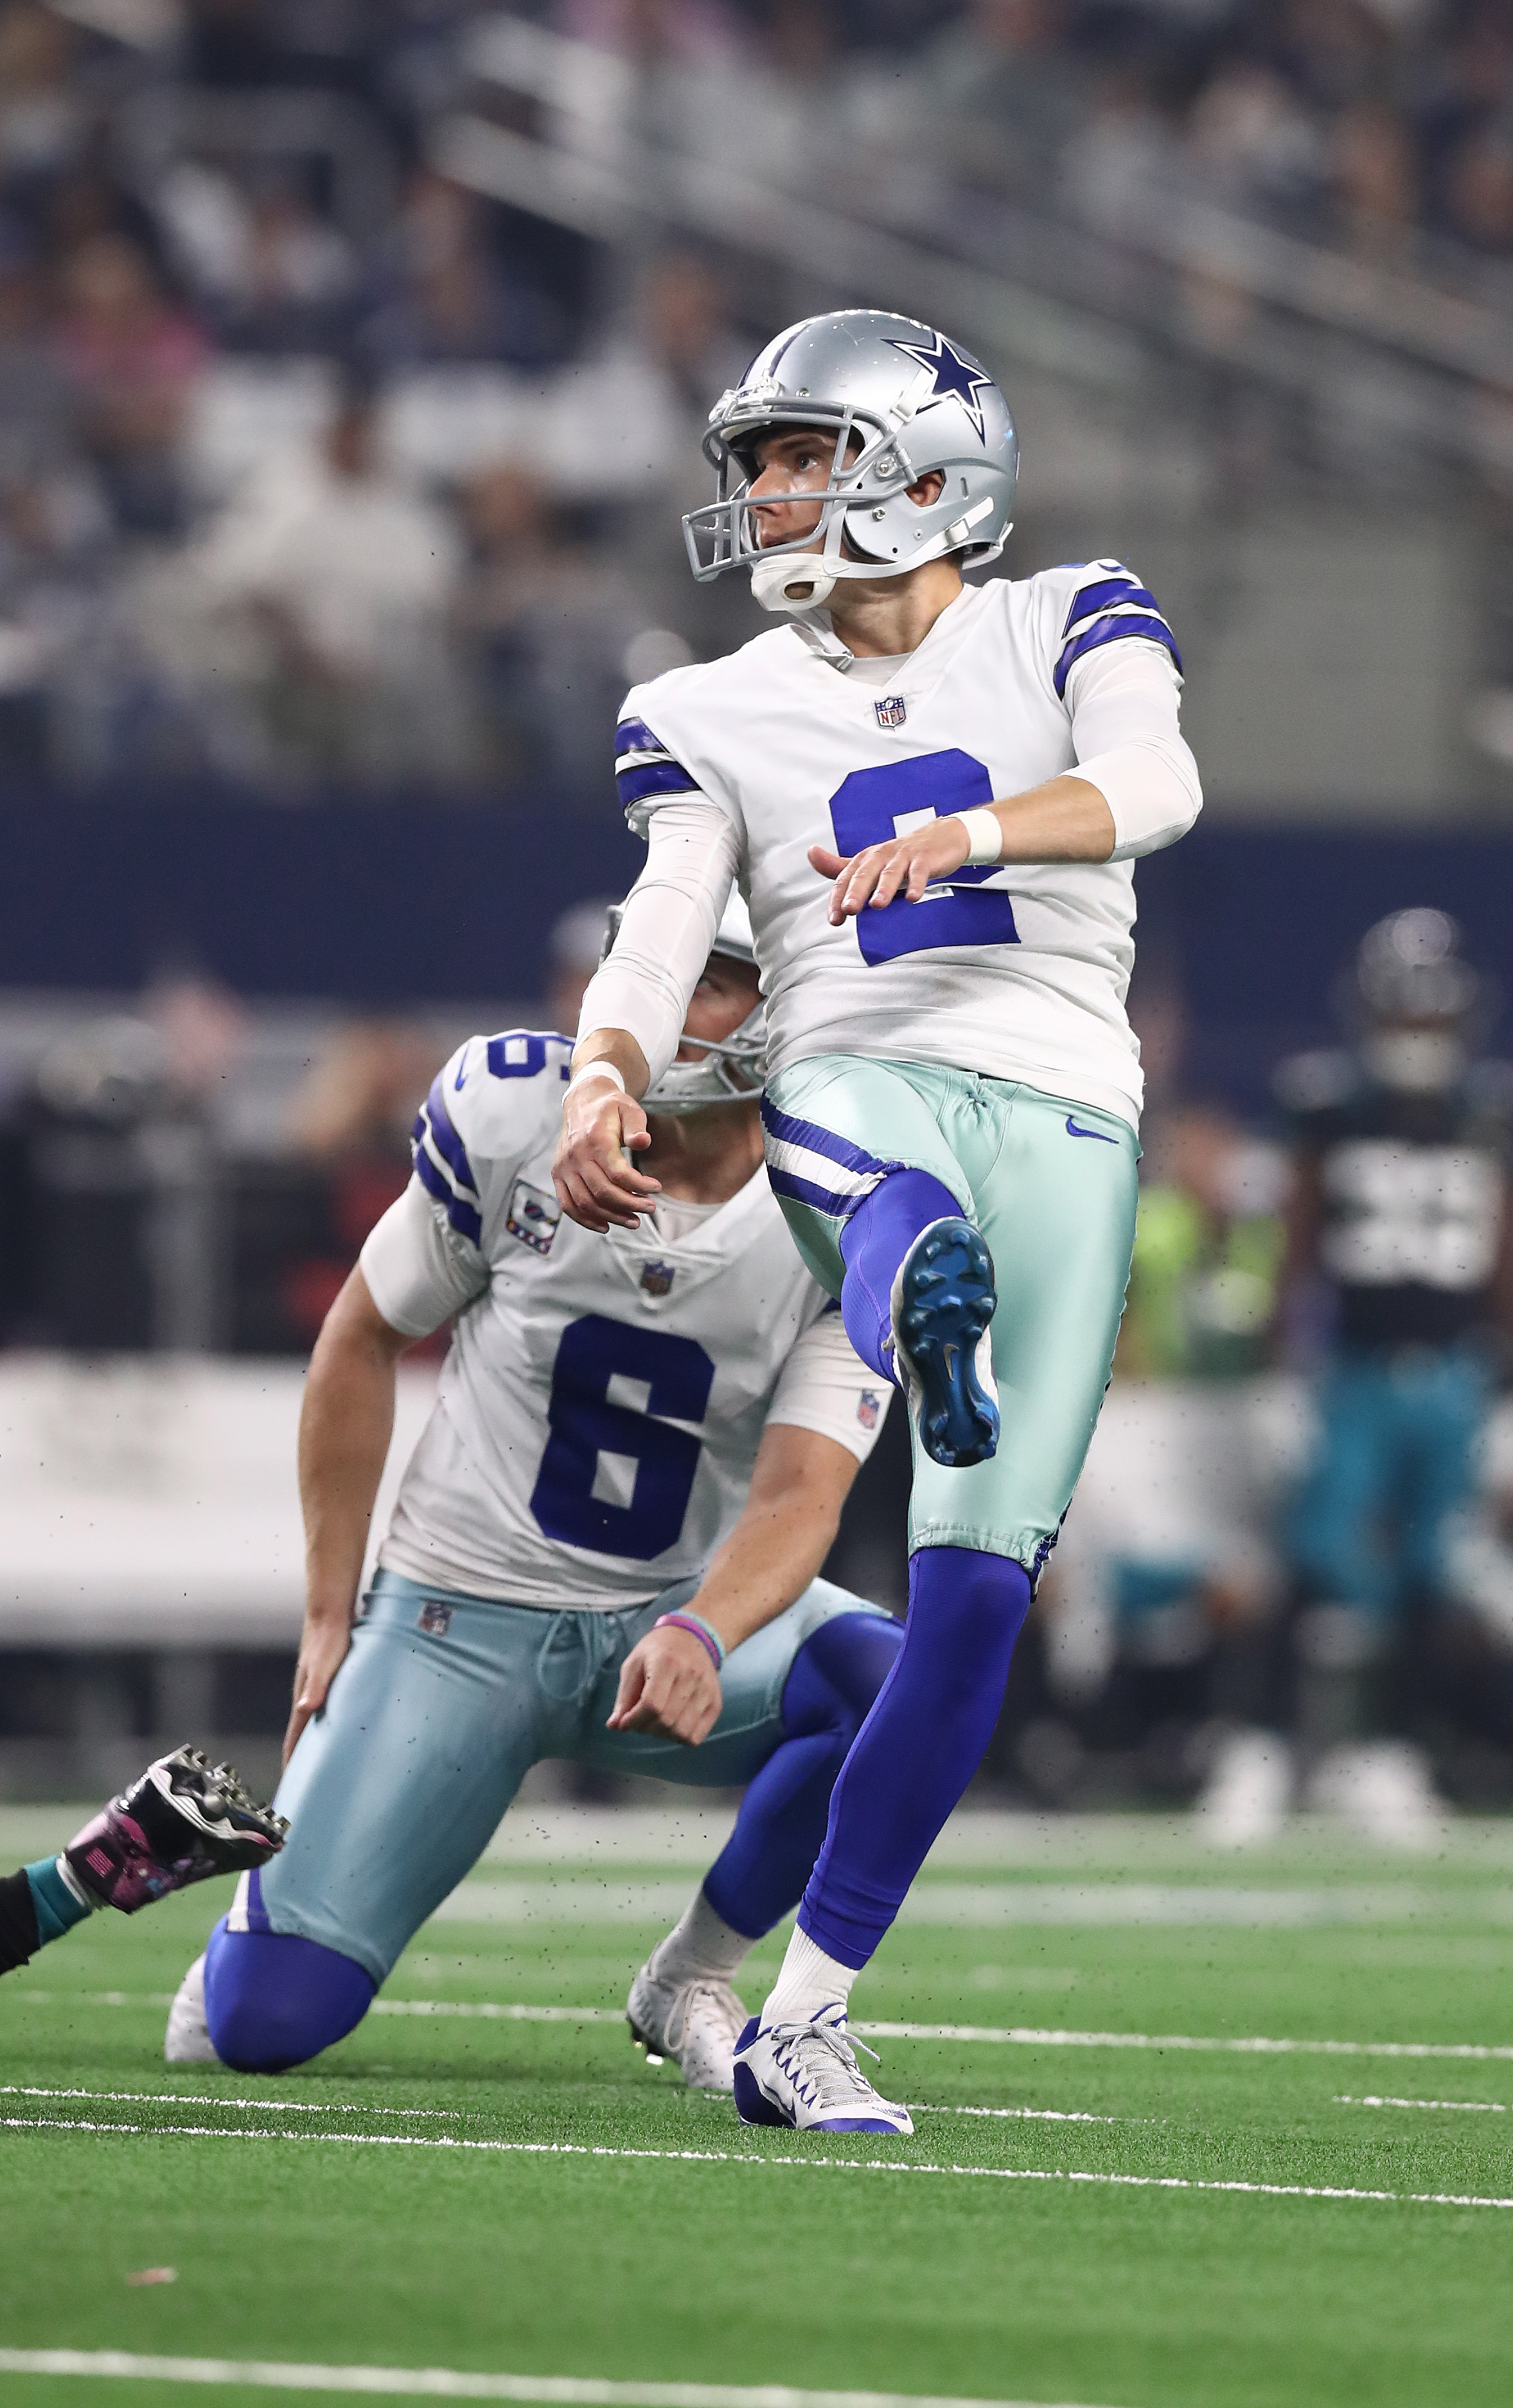 The Cowboys blew their chance at the NFC East lead with a rare snap penalty